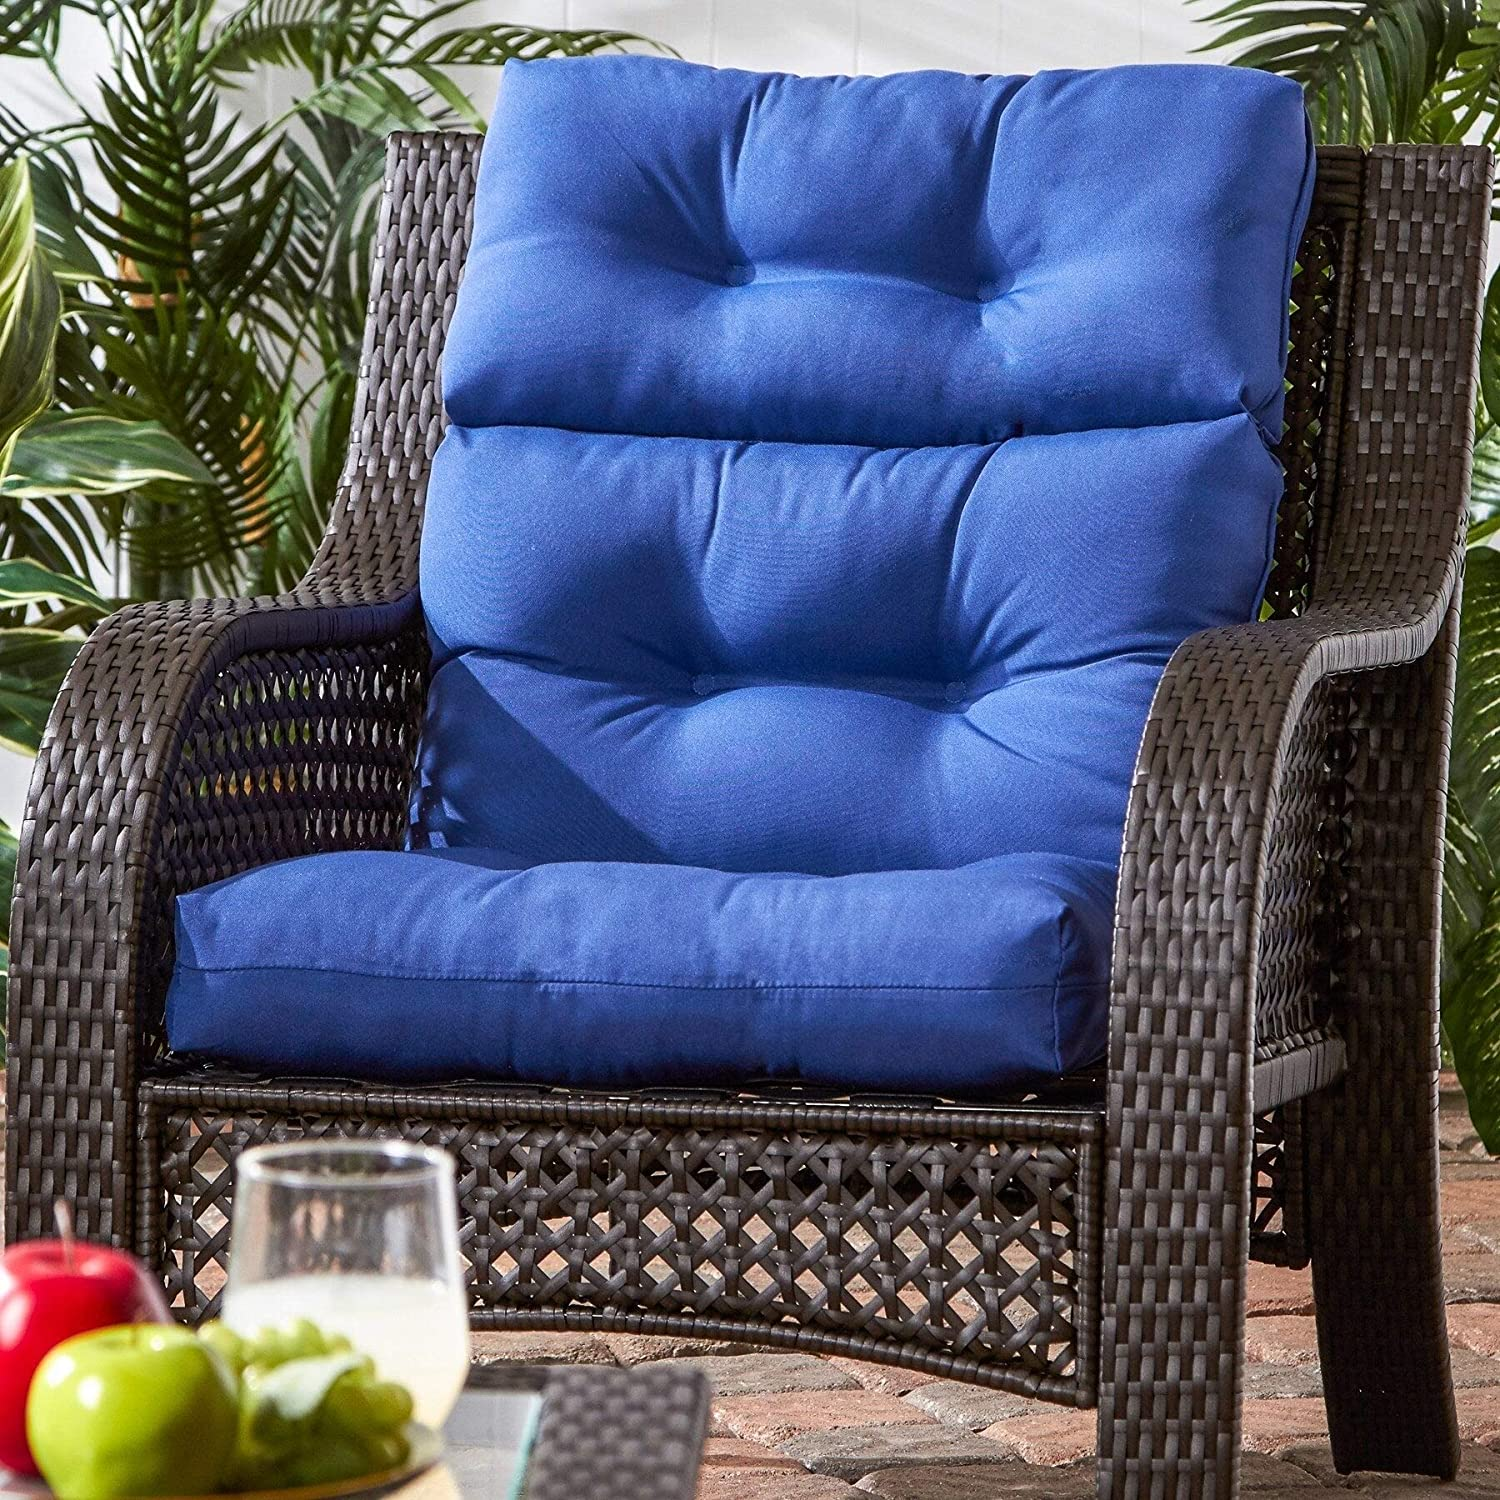 Driftwood 3 Section Outdoor Marine Blue High Back Chair Cushion Solid Modern Contemporary Transitional Fabric Polyester Fade Resistant Uv Water